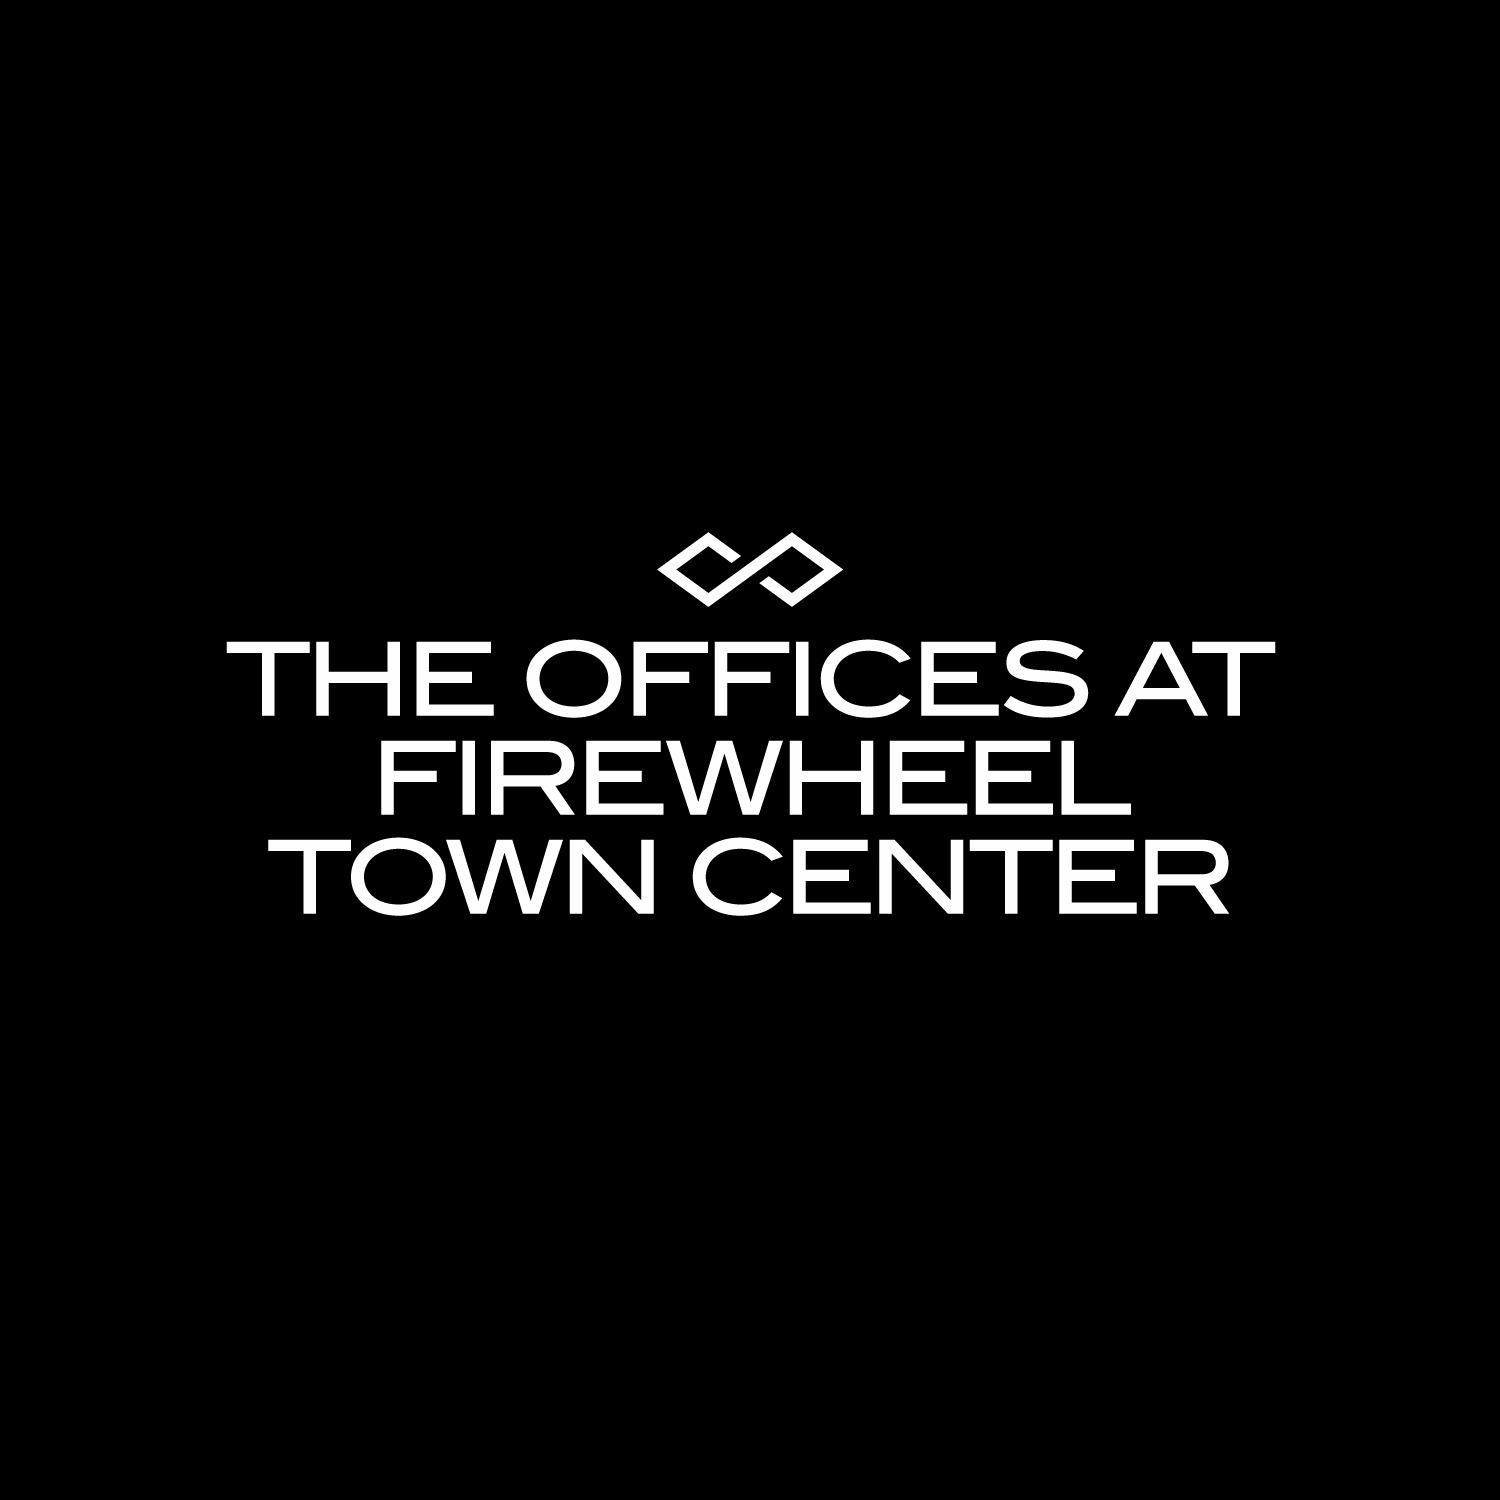 The Offices at Firewheel Town Center